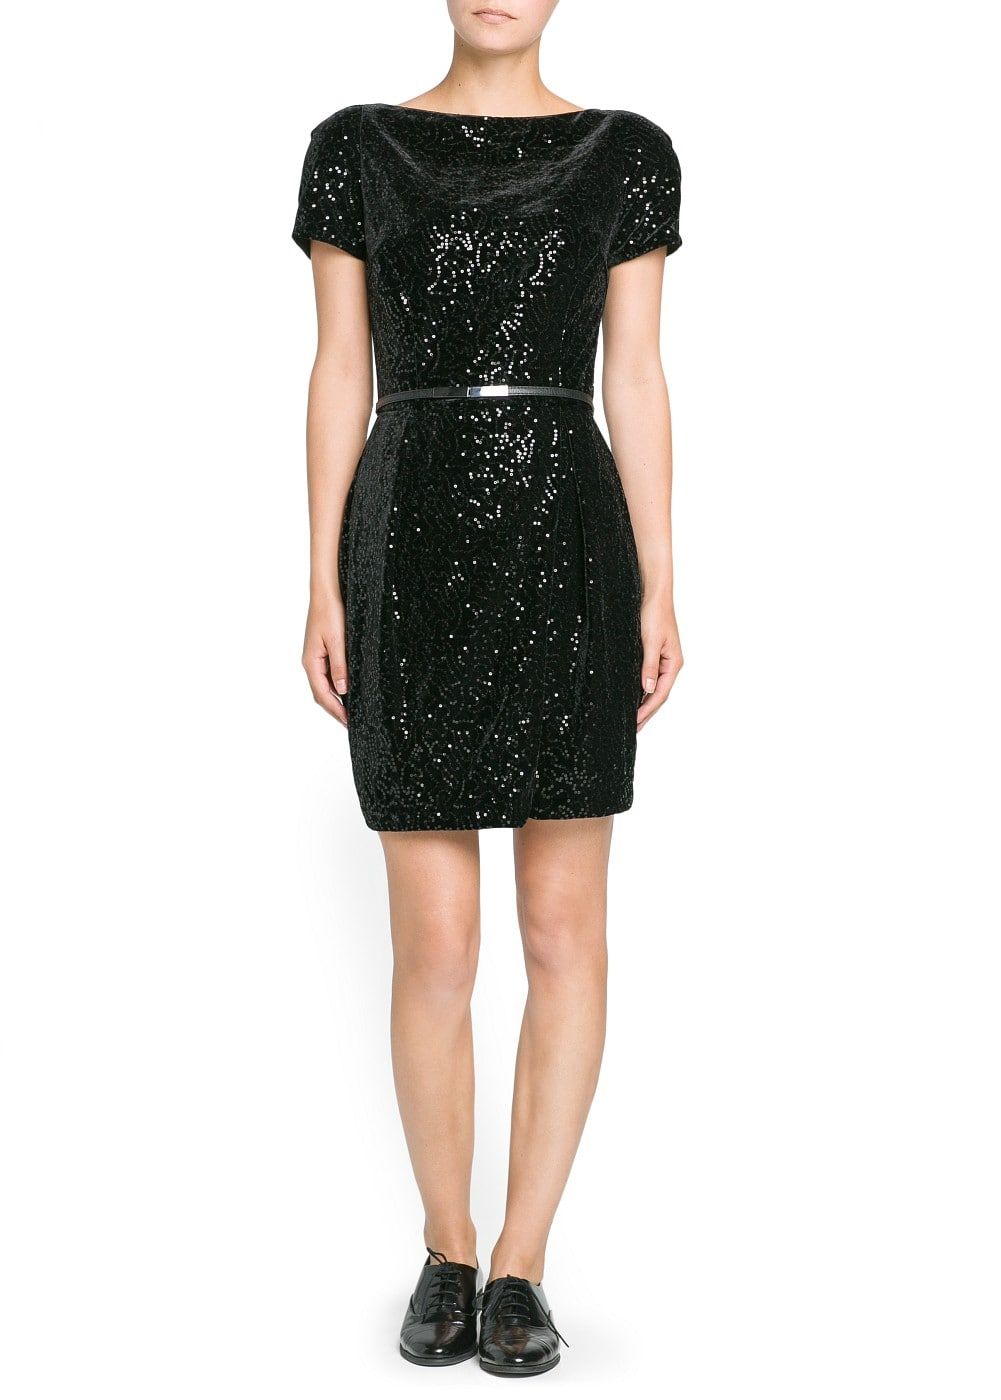 Sequin velvet dress